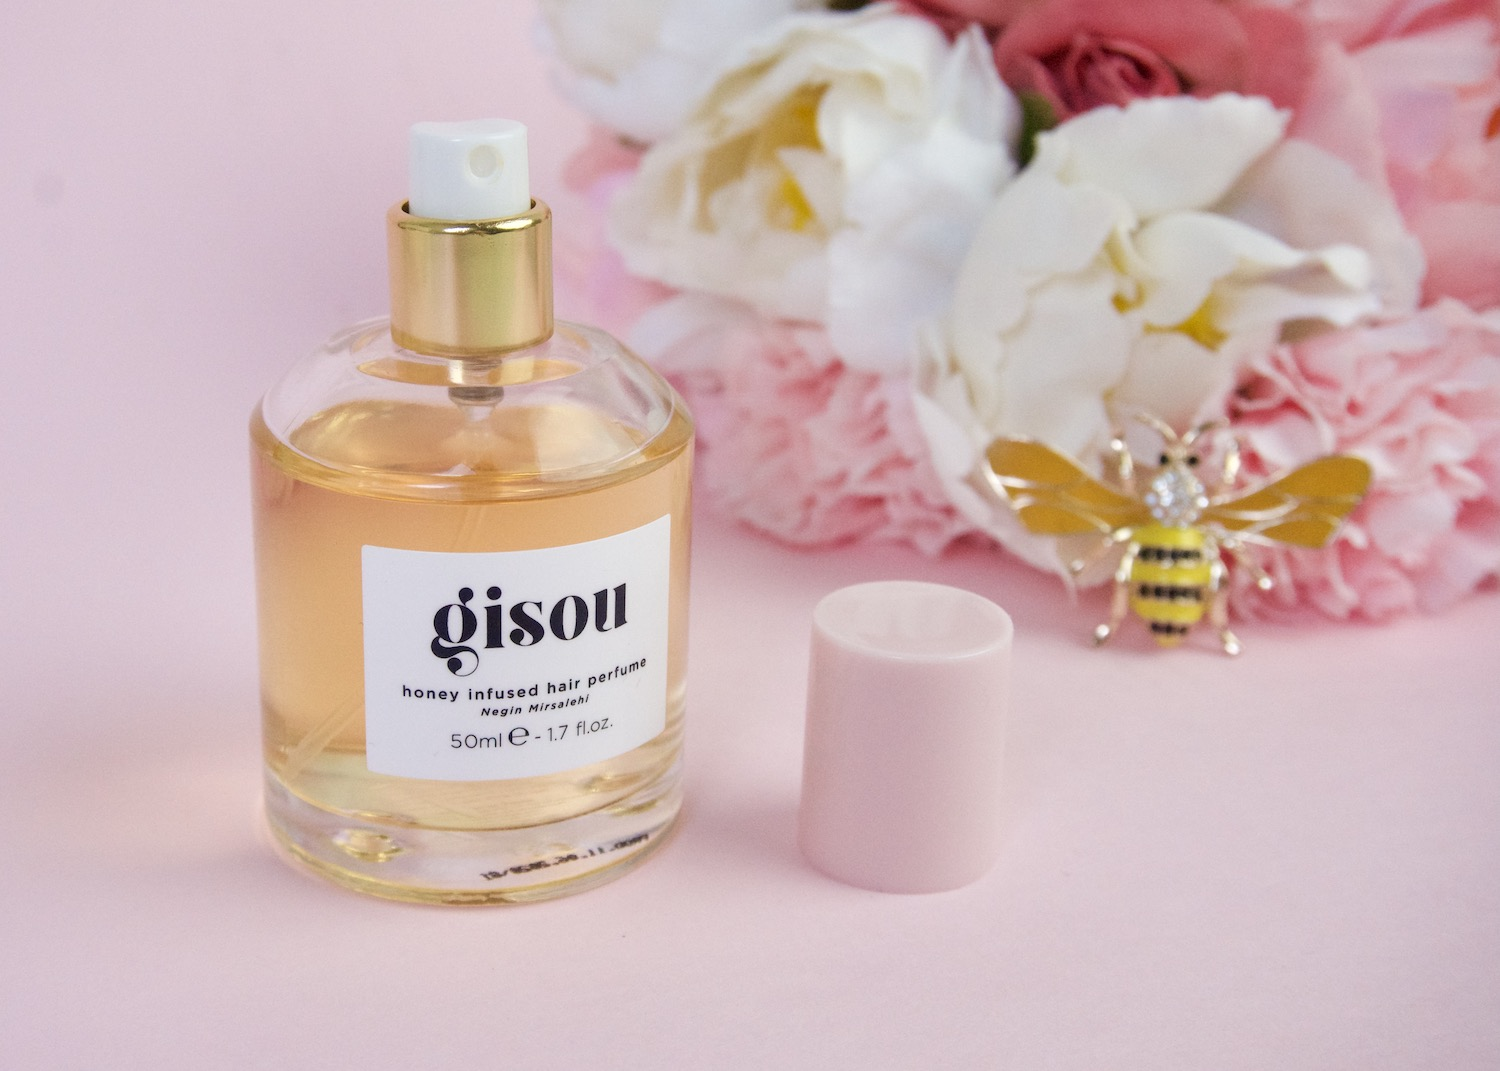 Gisou Honey Infused Hair Perfume review